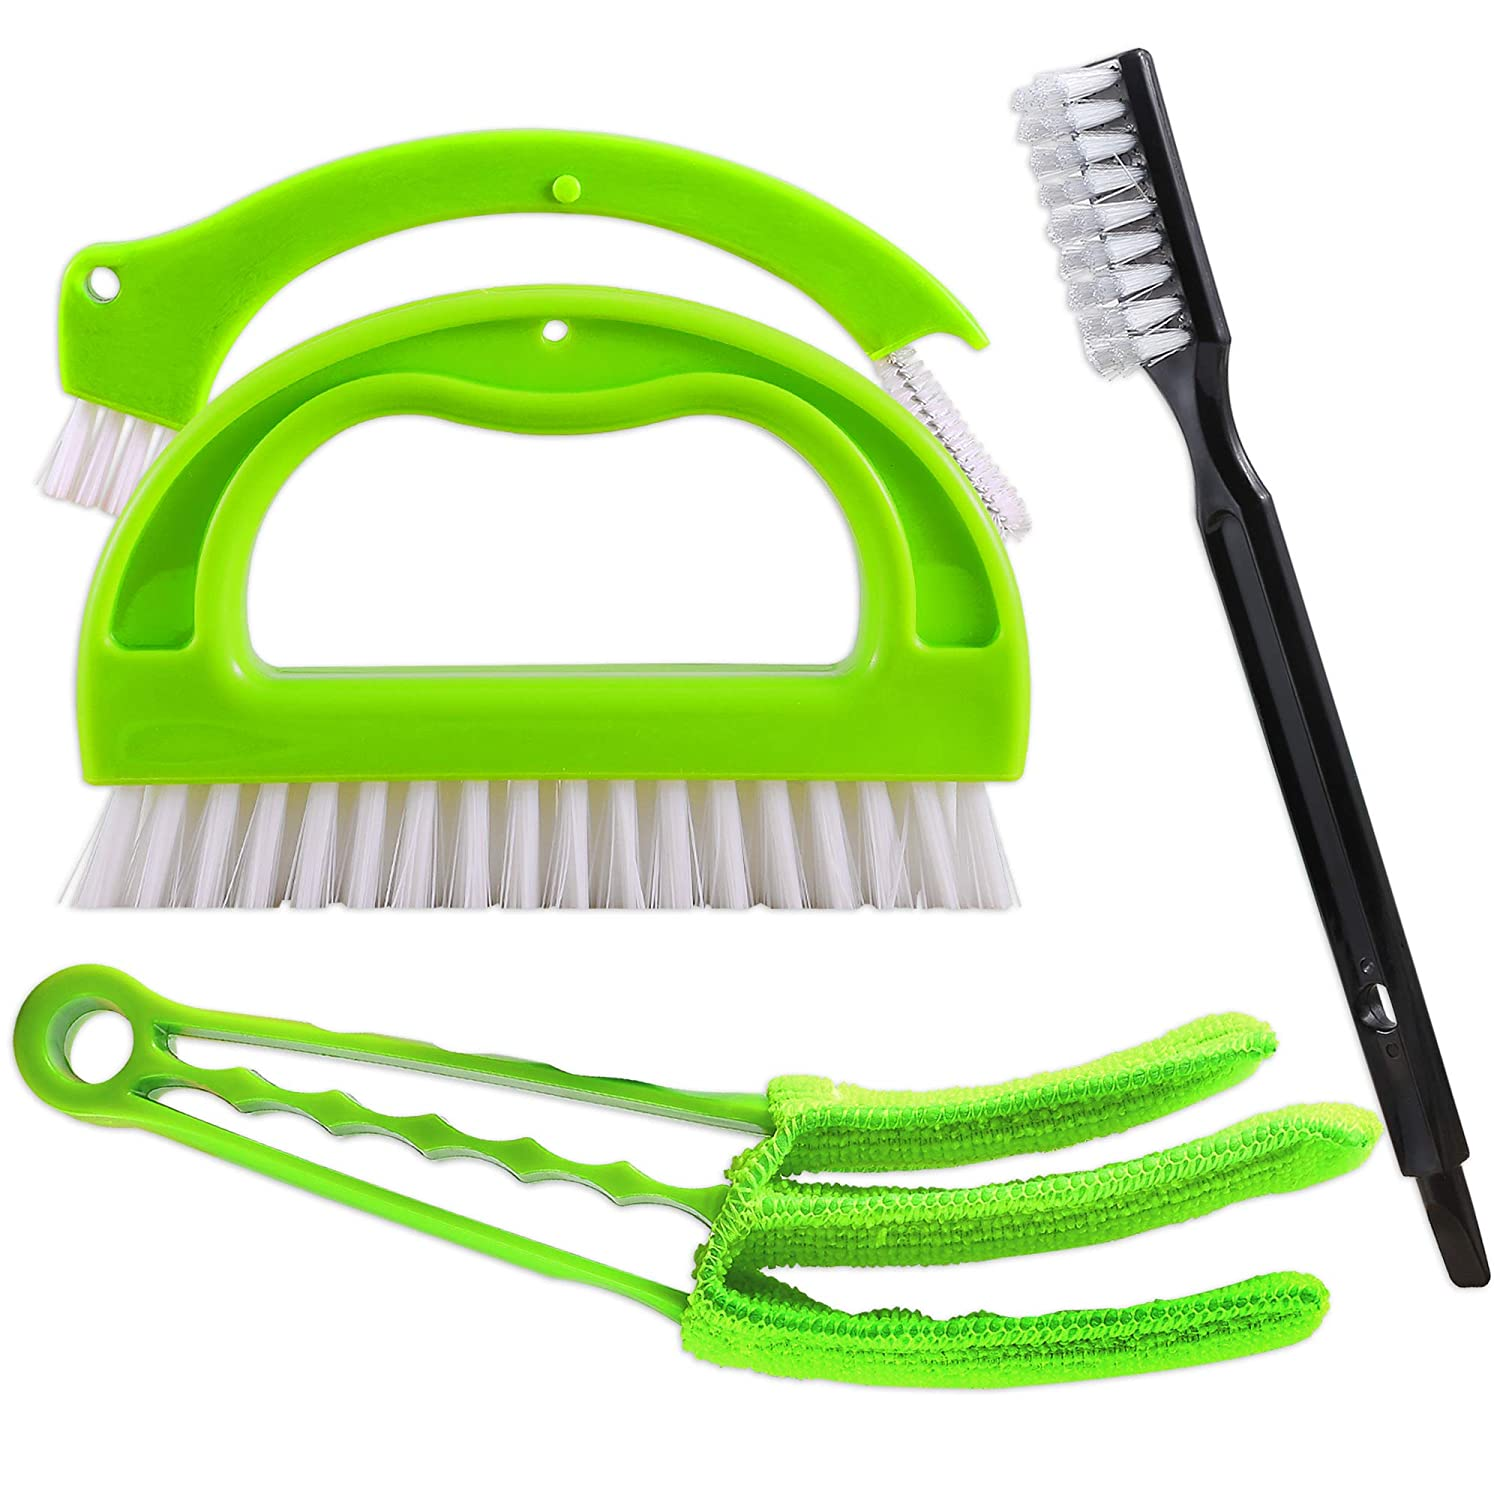 Tile Brushes+Venetian Blind Duster, SOSMAR Kitchen Bathroom Joint Brush Cleaner, Window Blinds Cleaner with Extra Microfiber Sleeve, 4 in 1 Brushes for Home House Deep Cleaning